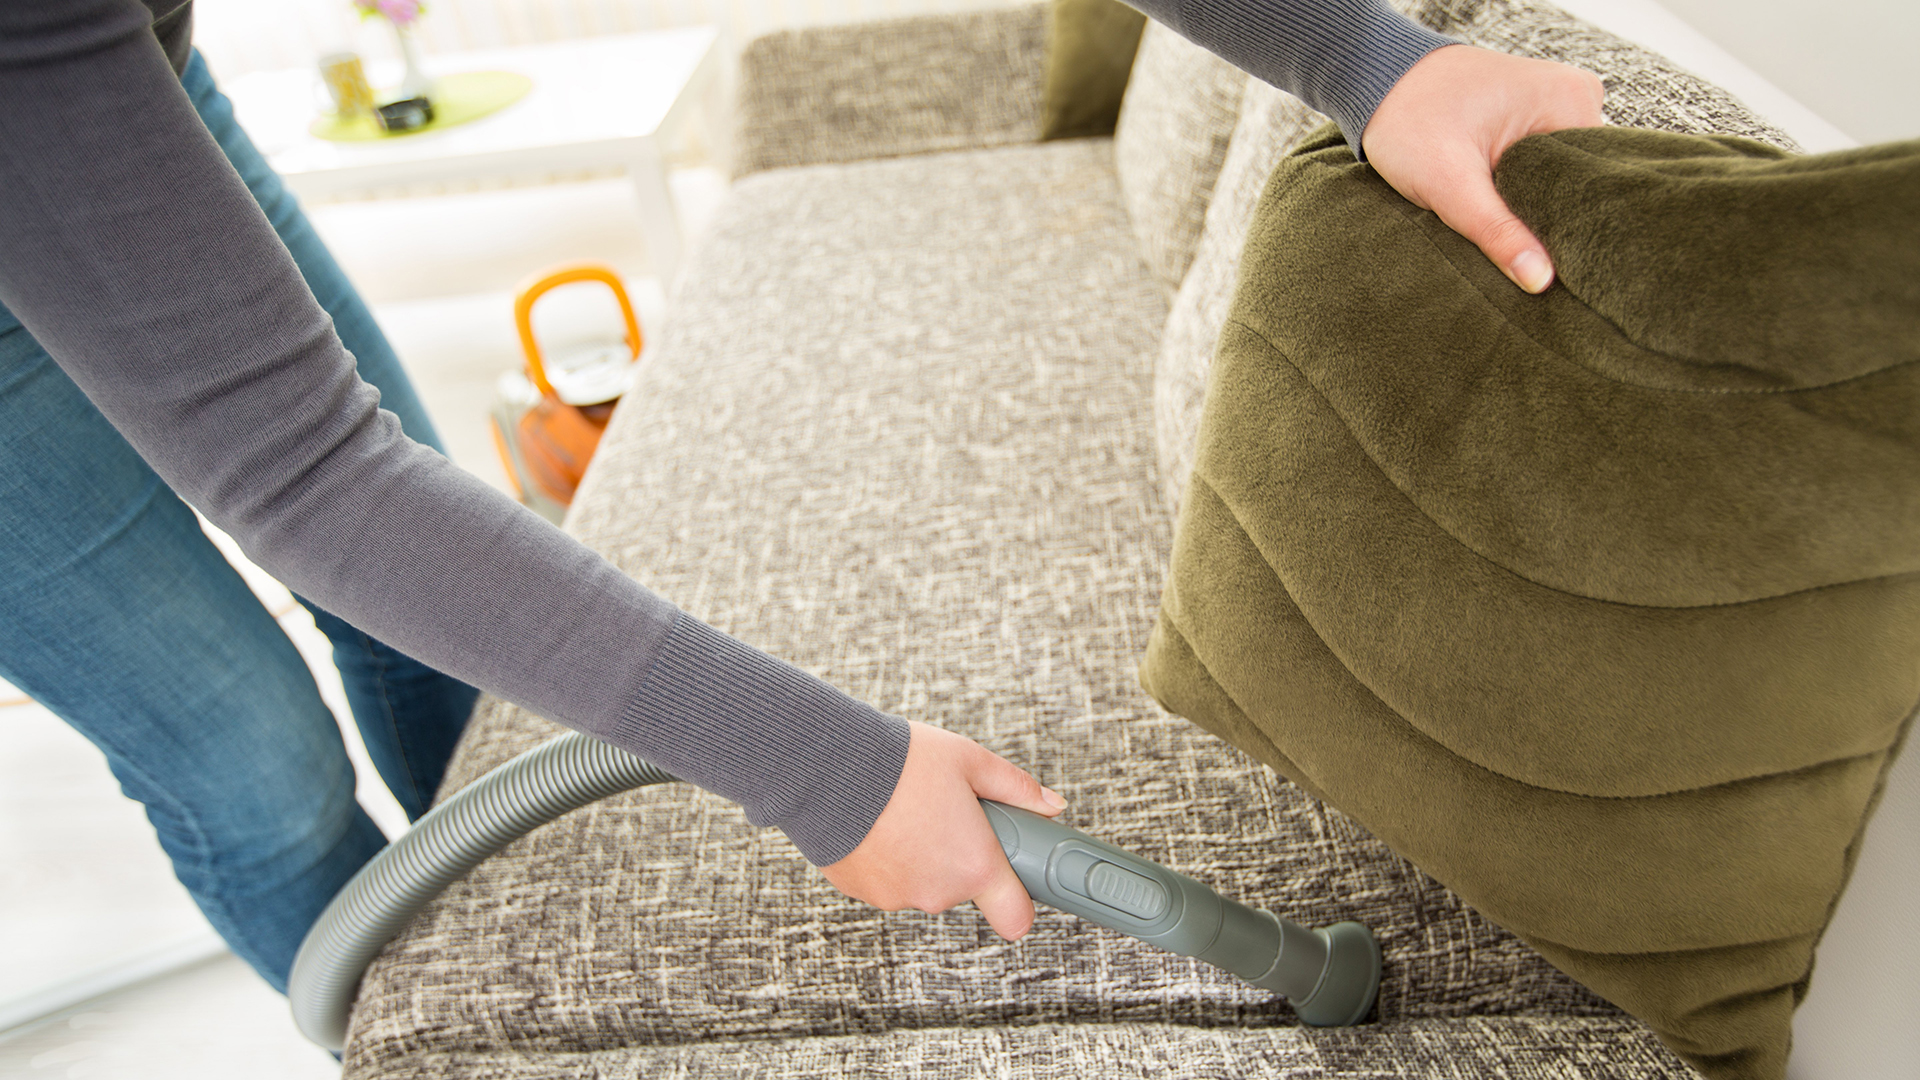 How to clean upholstery: Clean couches